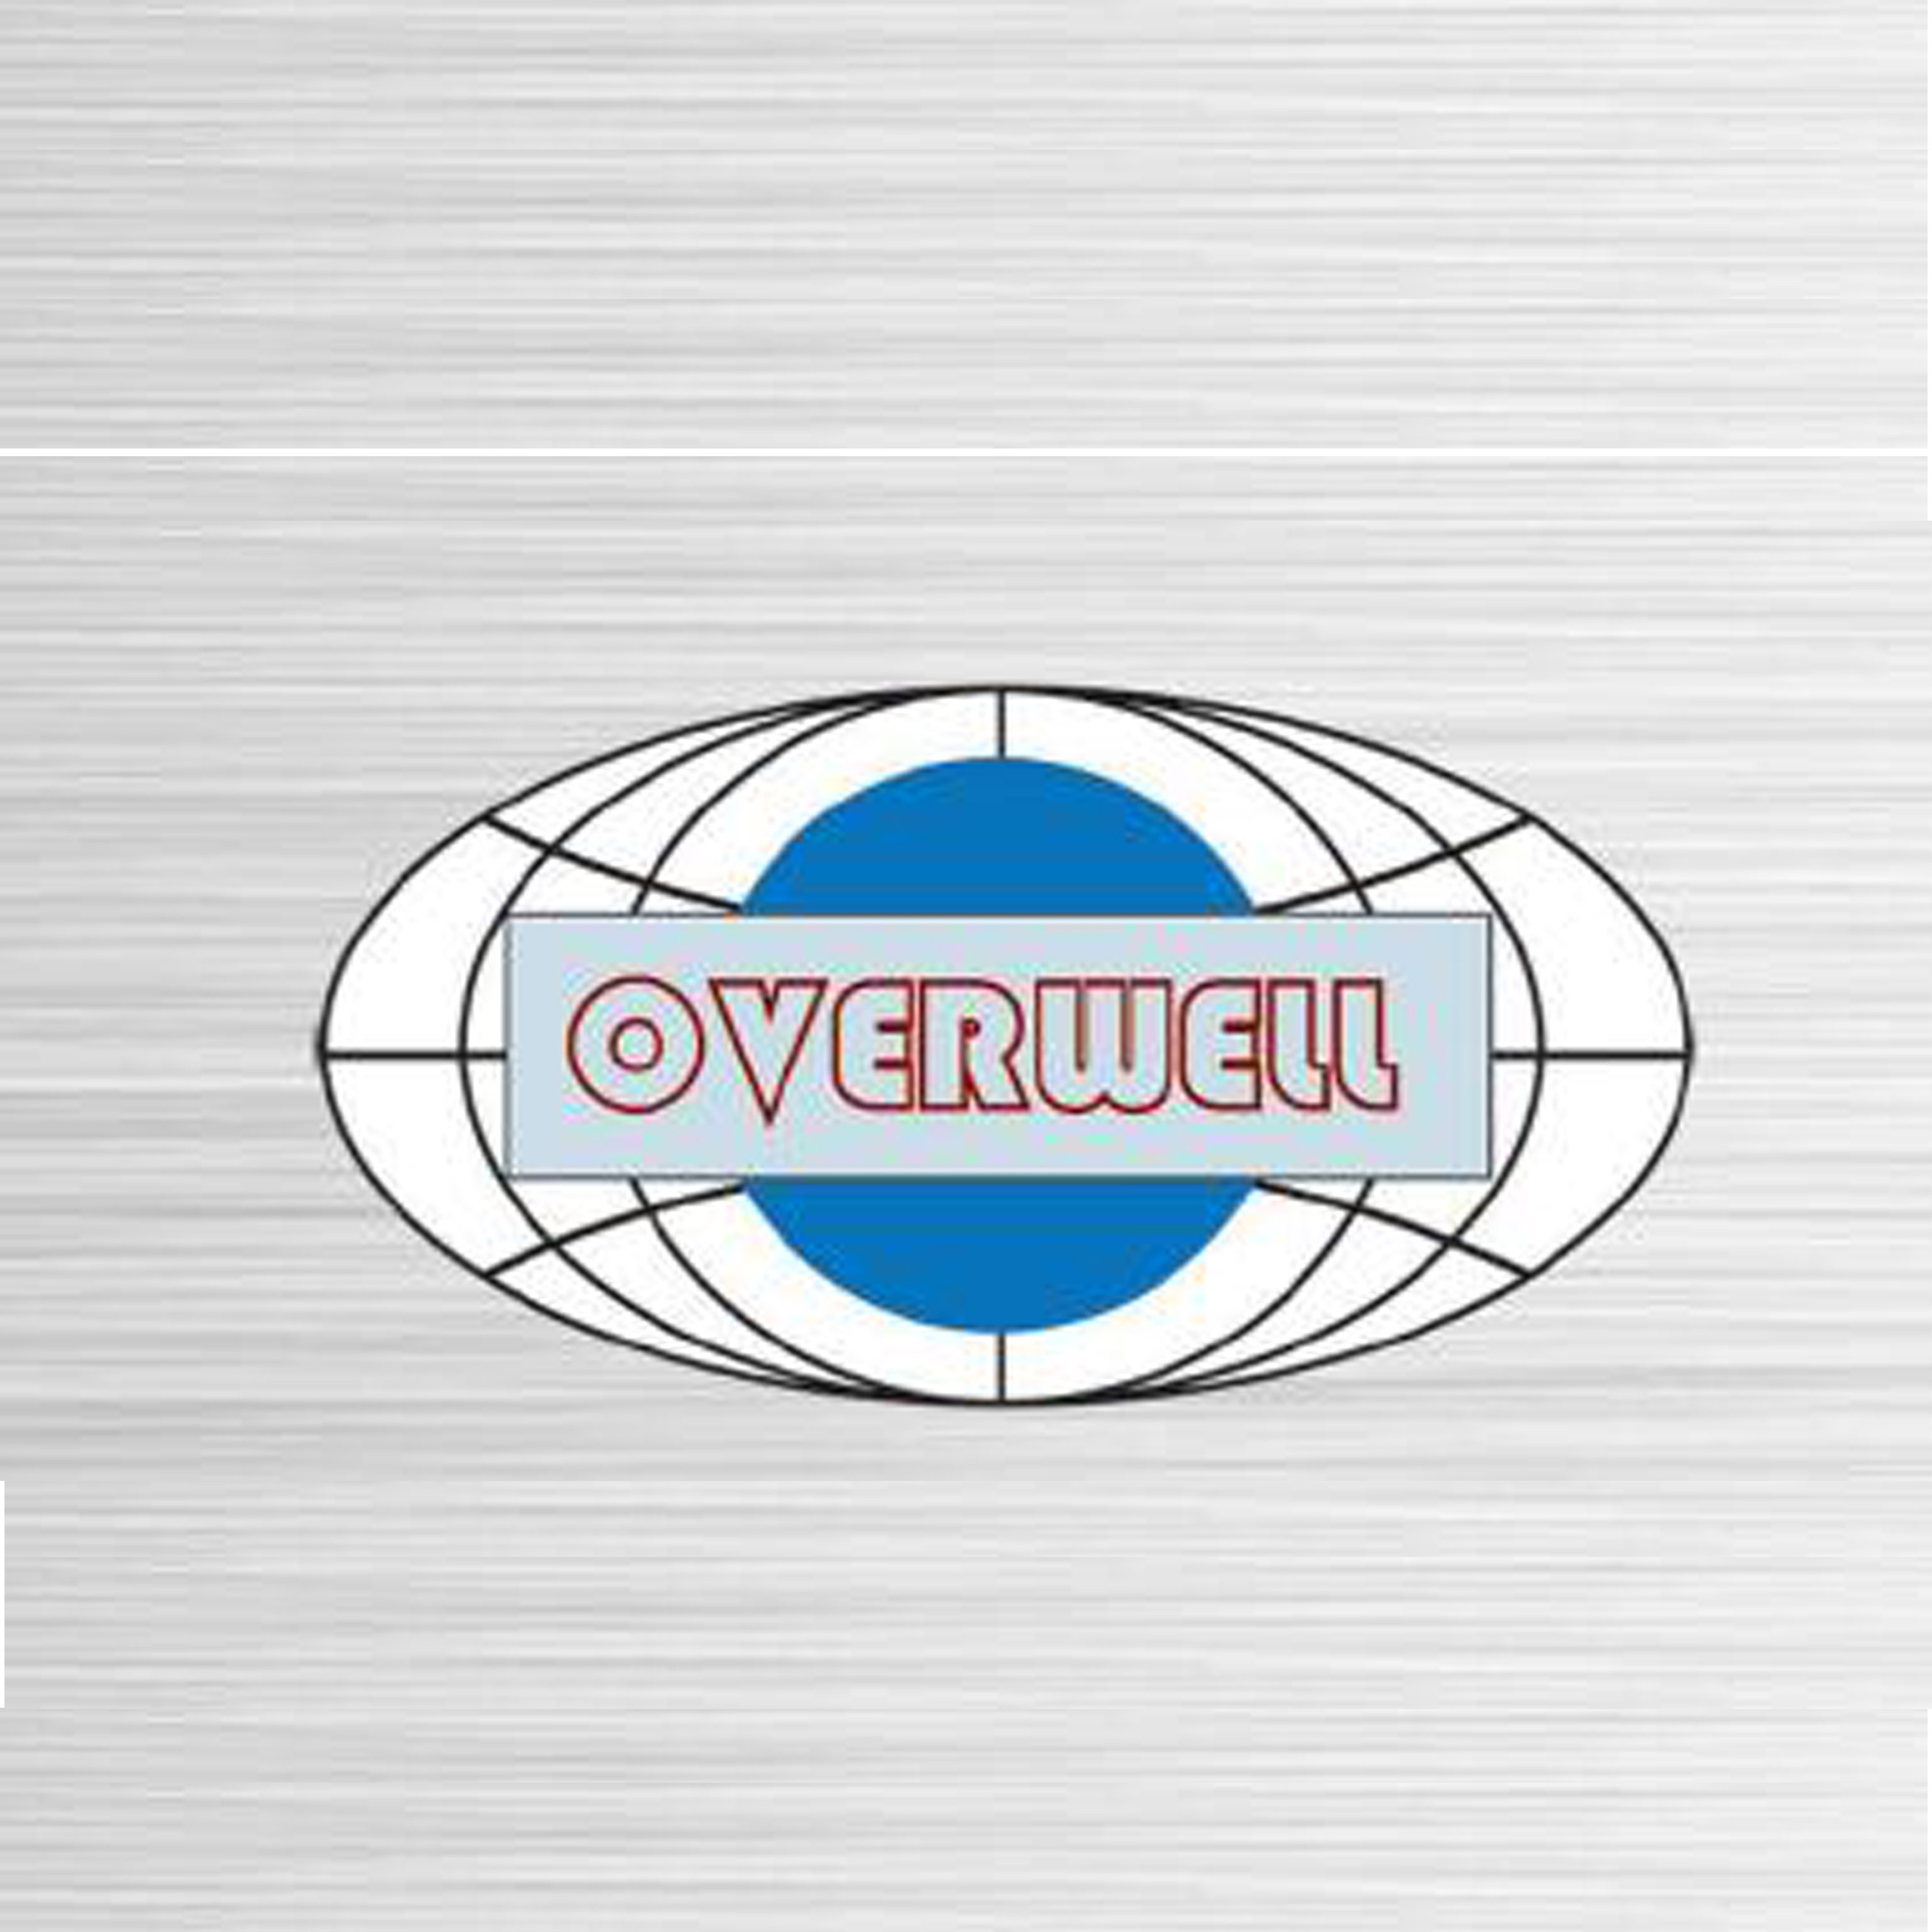 Overwell(Jinan)Piping Materials Manufacturing Co.,Ltd